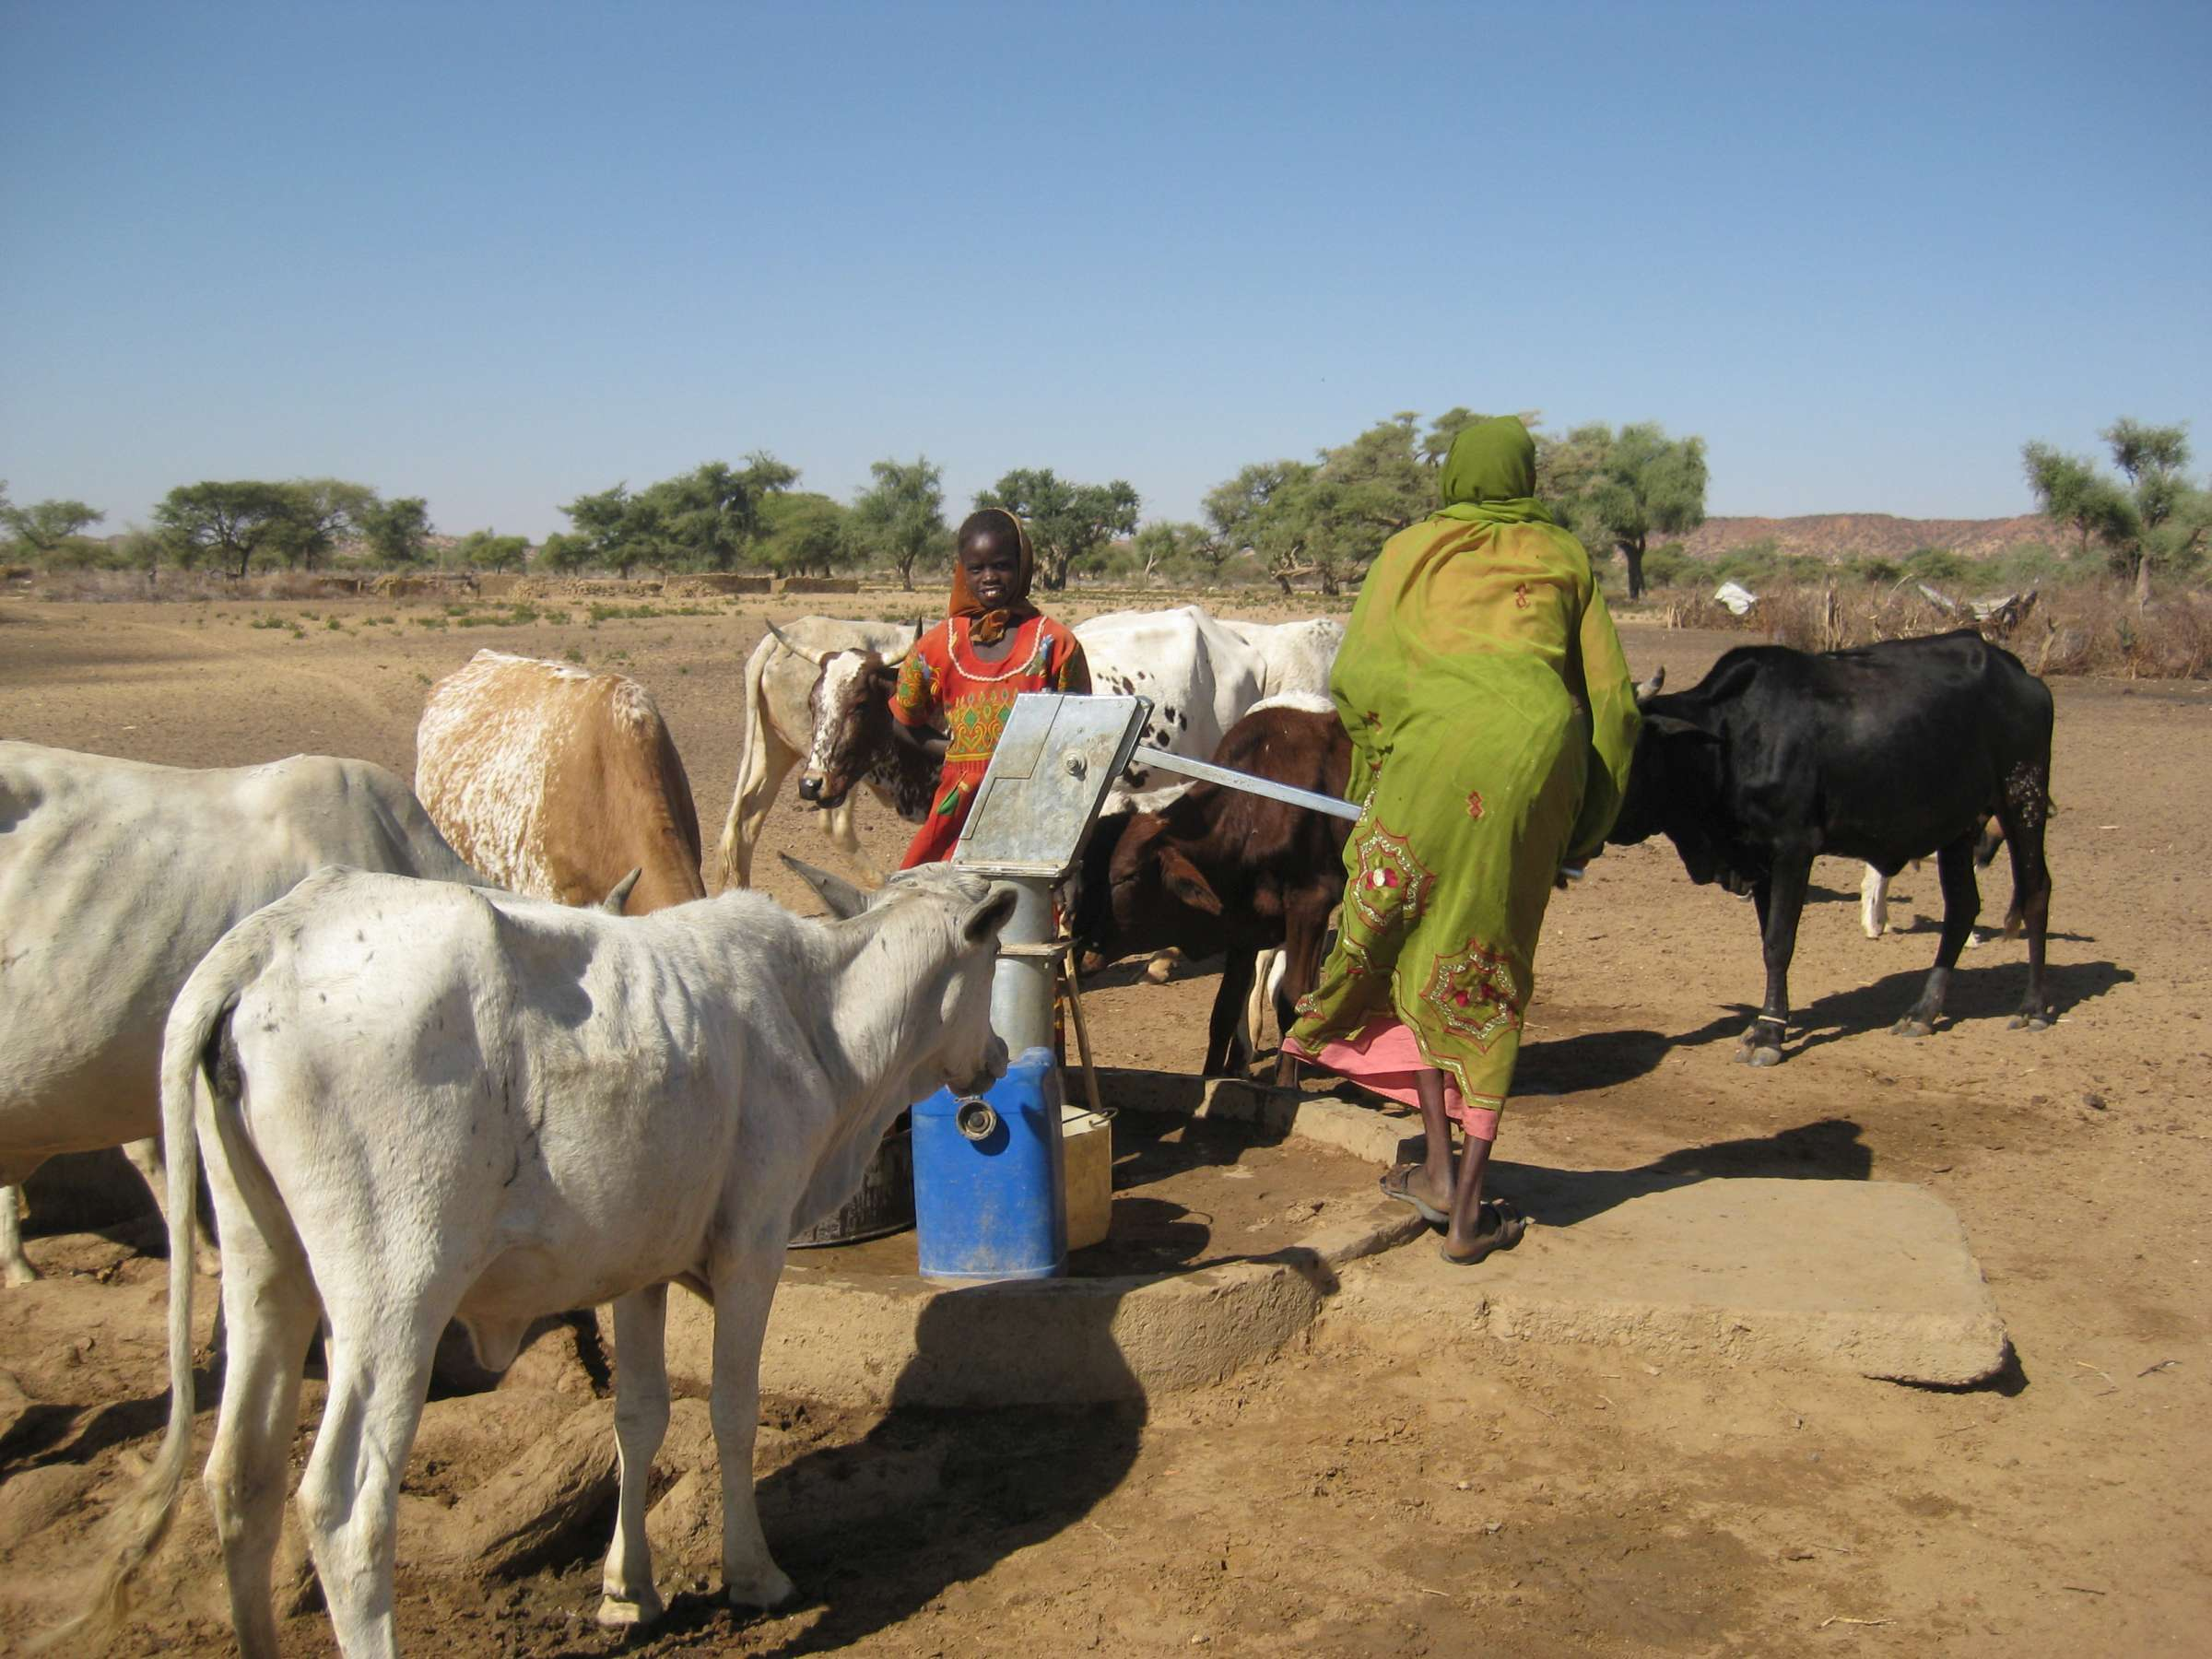 Access to water in Darfur